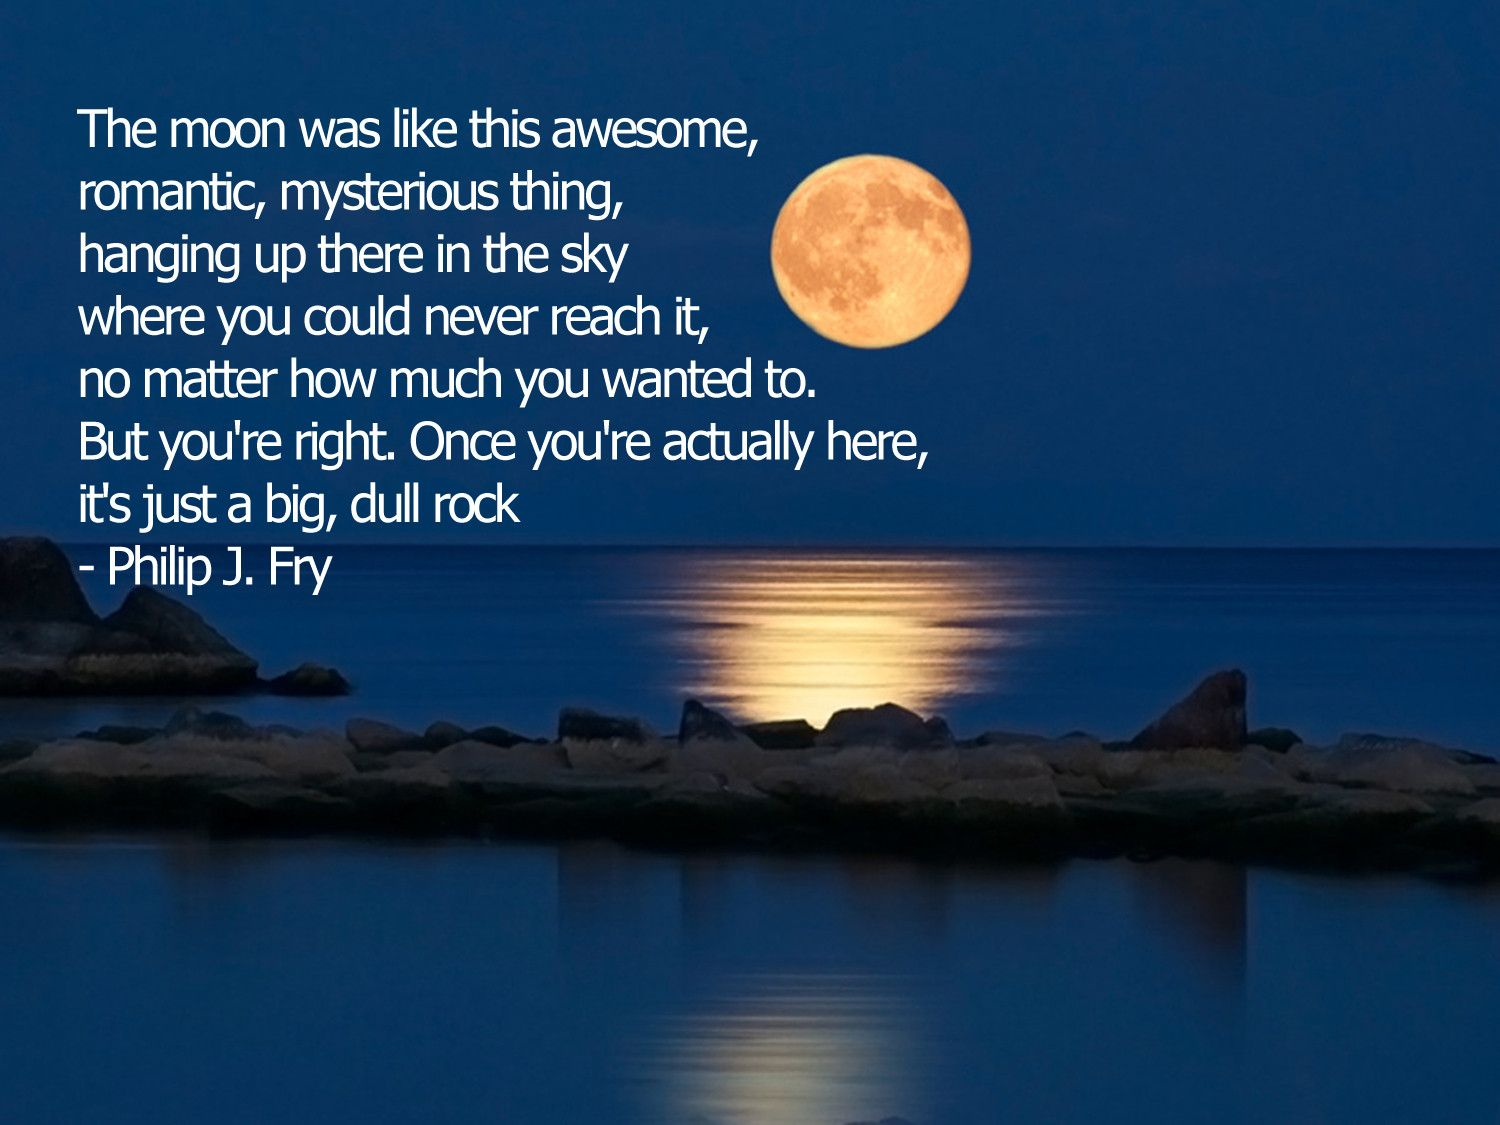 The Moon Was Like This Awesome Romantic Philip J Fry Moon Quotes Moon Pictures Moon